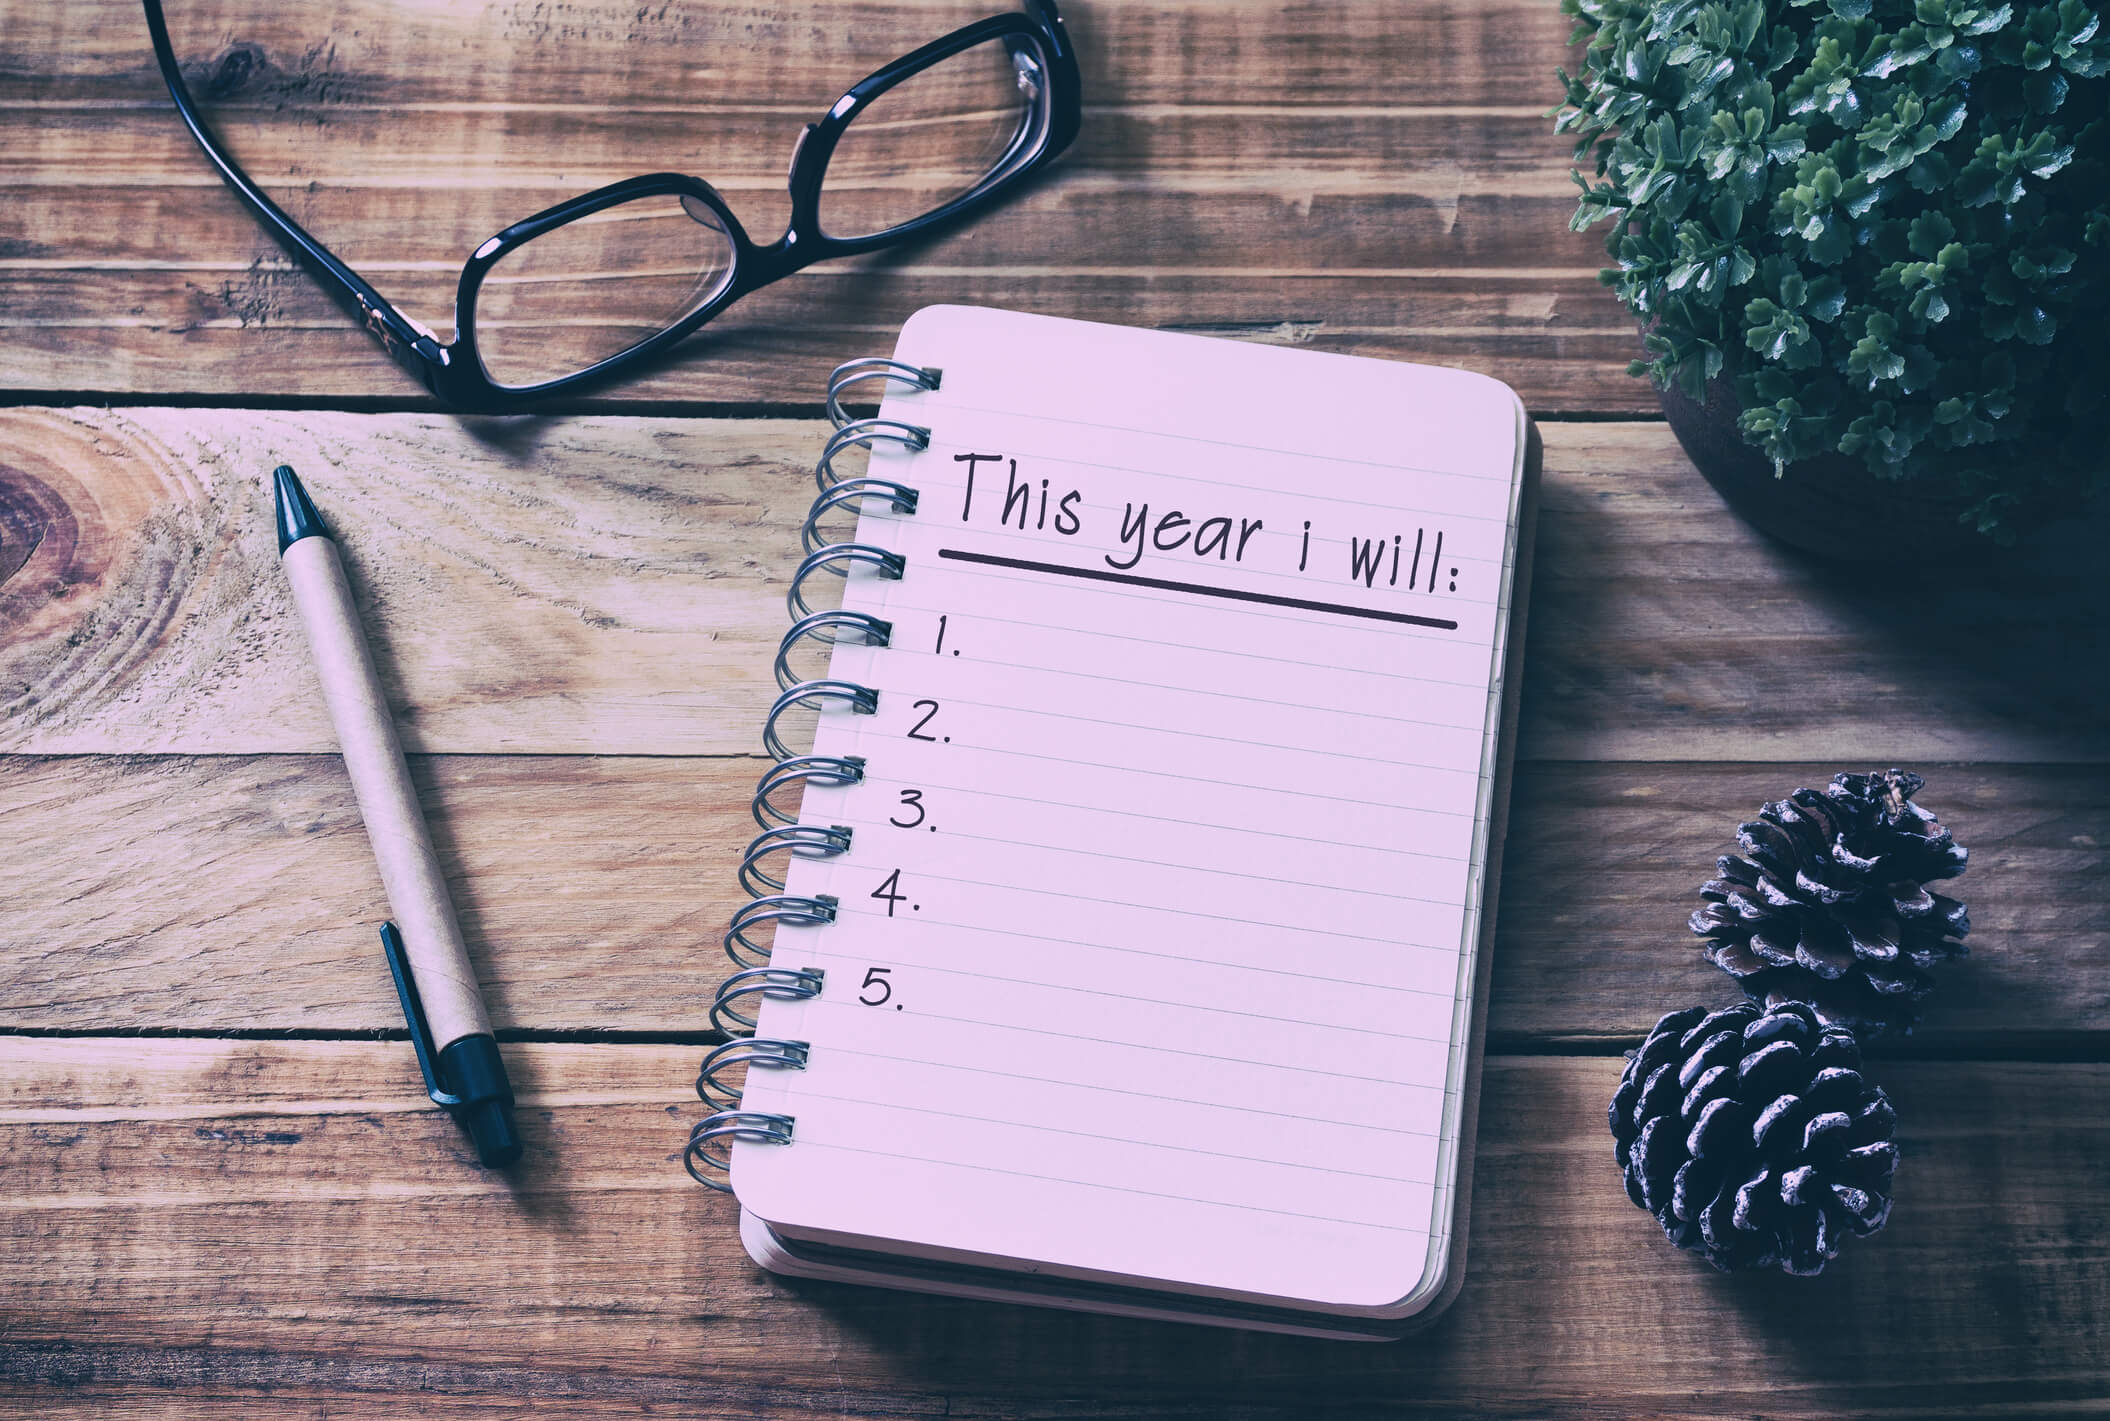 7 Tips For Growing Spiritually in 2018